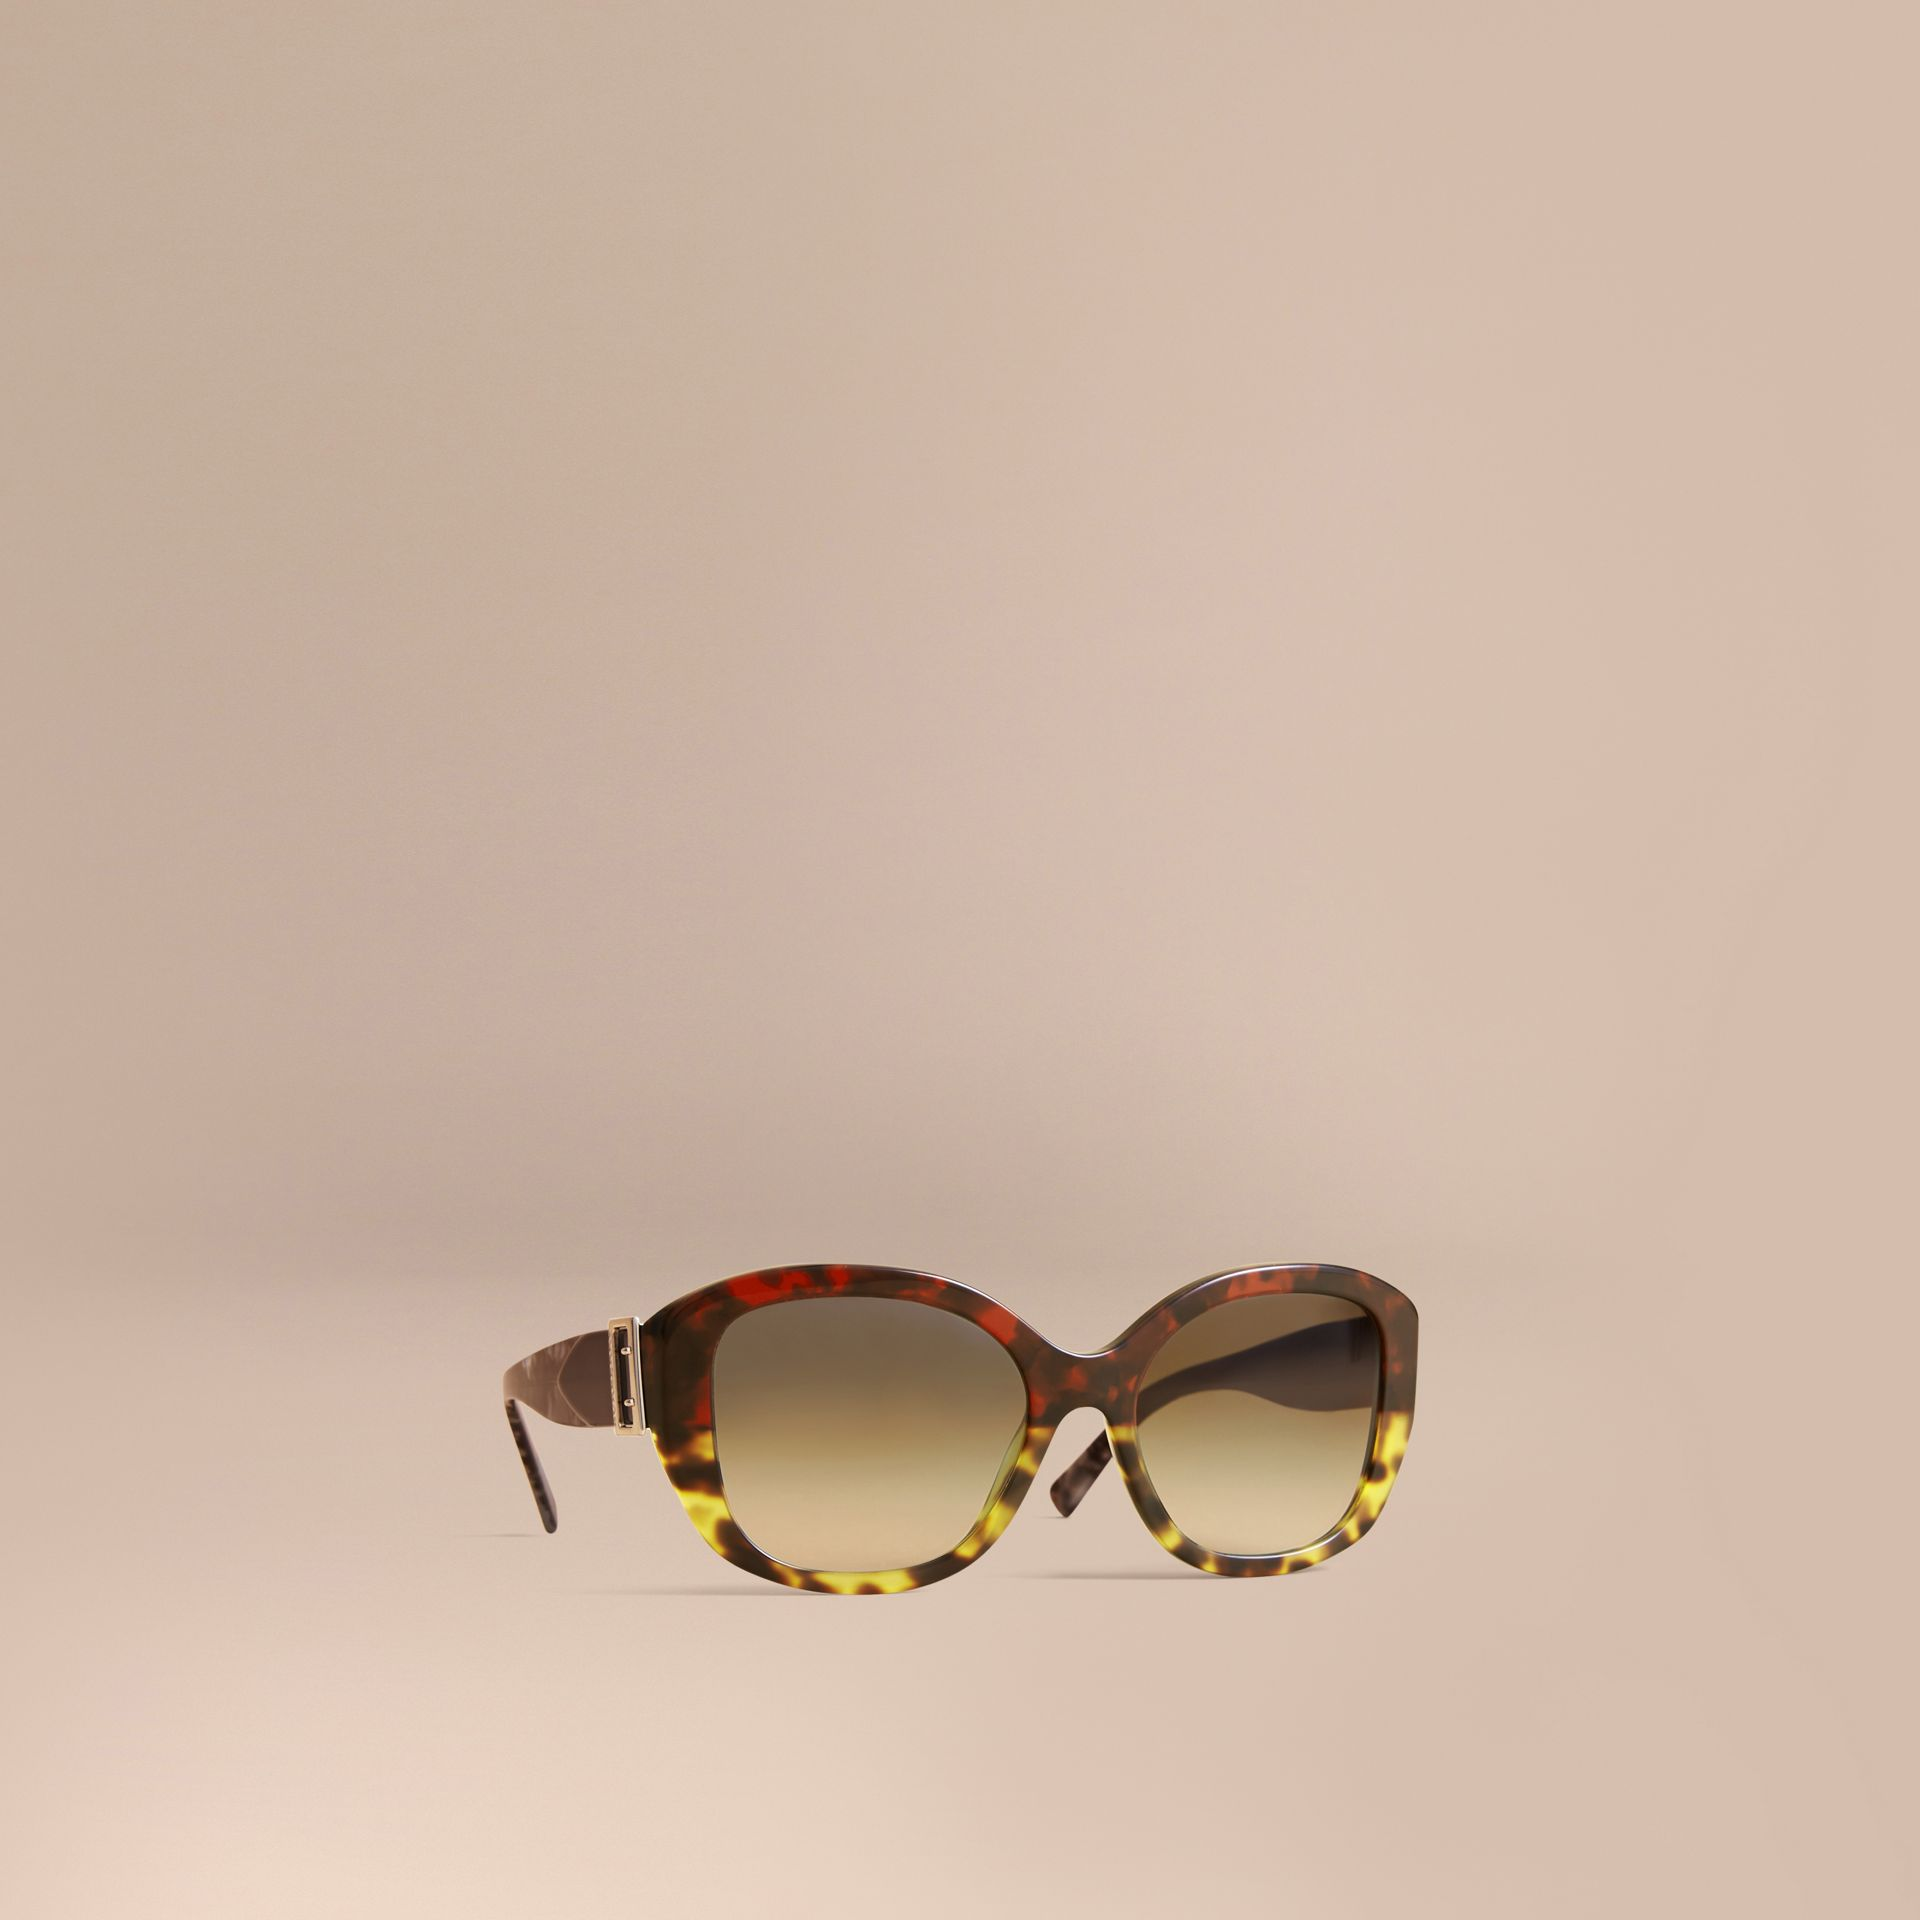 Buckle Detail Oversize Square Frame Sunglasses in Amber Yellow - Women | Burberry Canada - gallery image 1